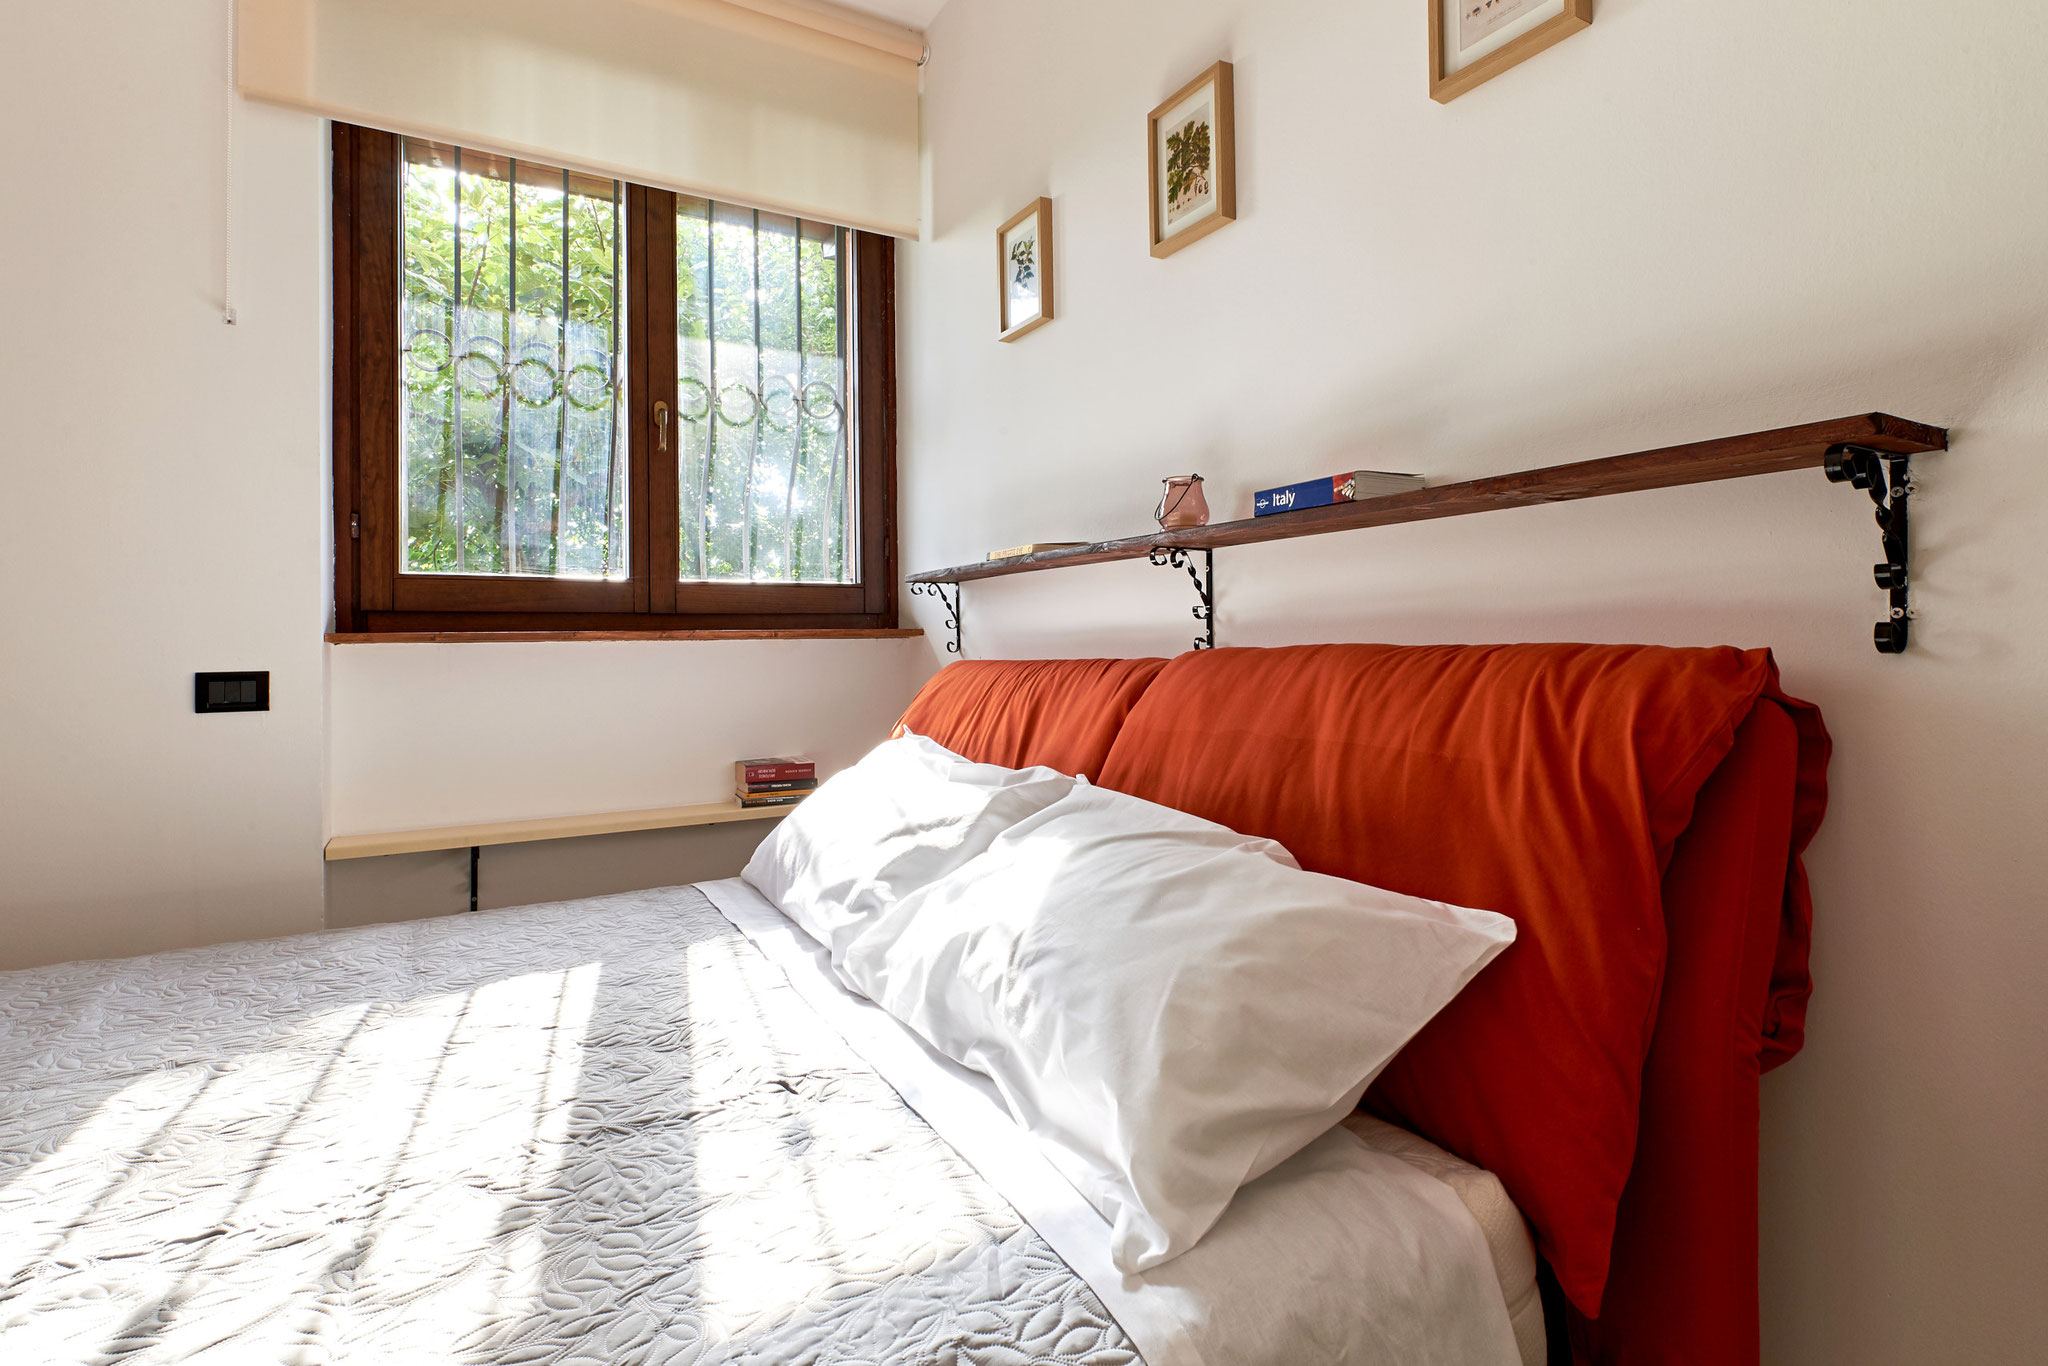 Casa San Giorgio Holiday House - Bedroom Holiday House AIR BNB Bed Breakfast